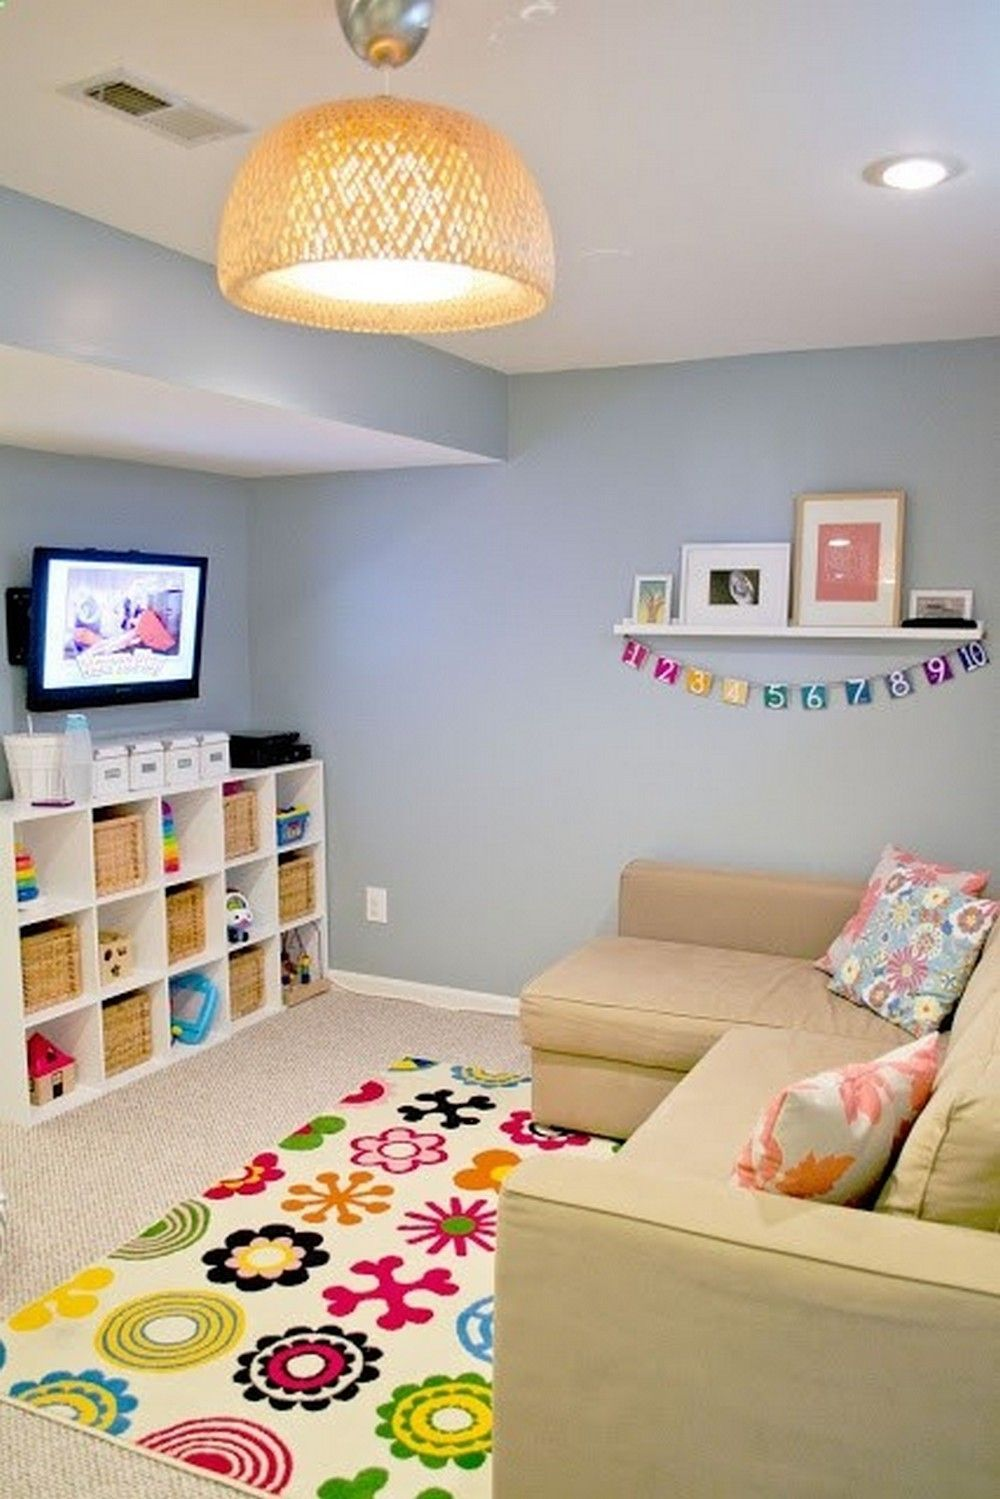 Pin By Chicken Street Rugs On Living Room Rugs | Playroom